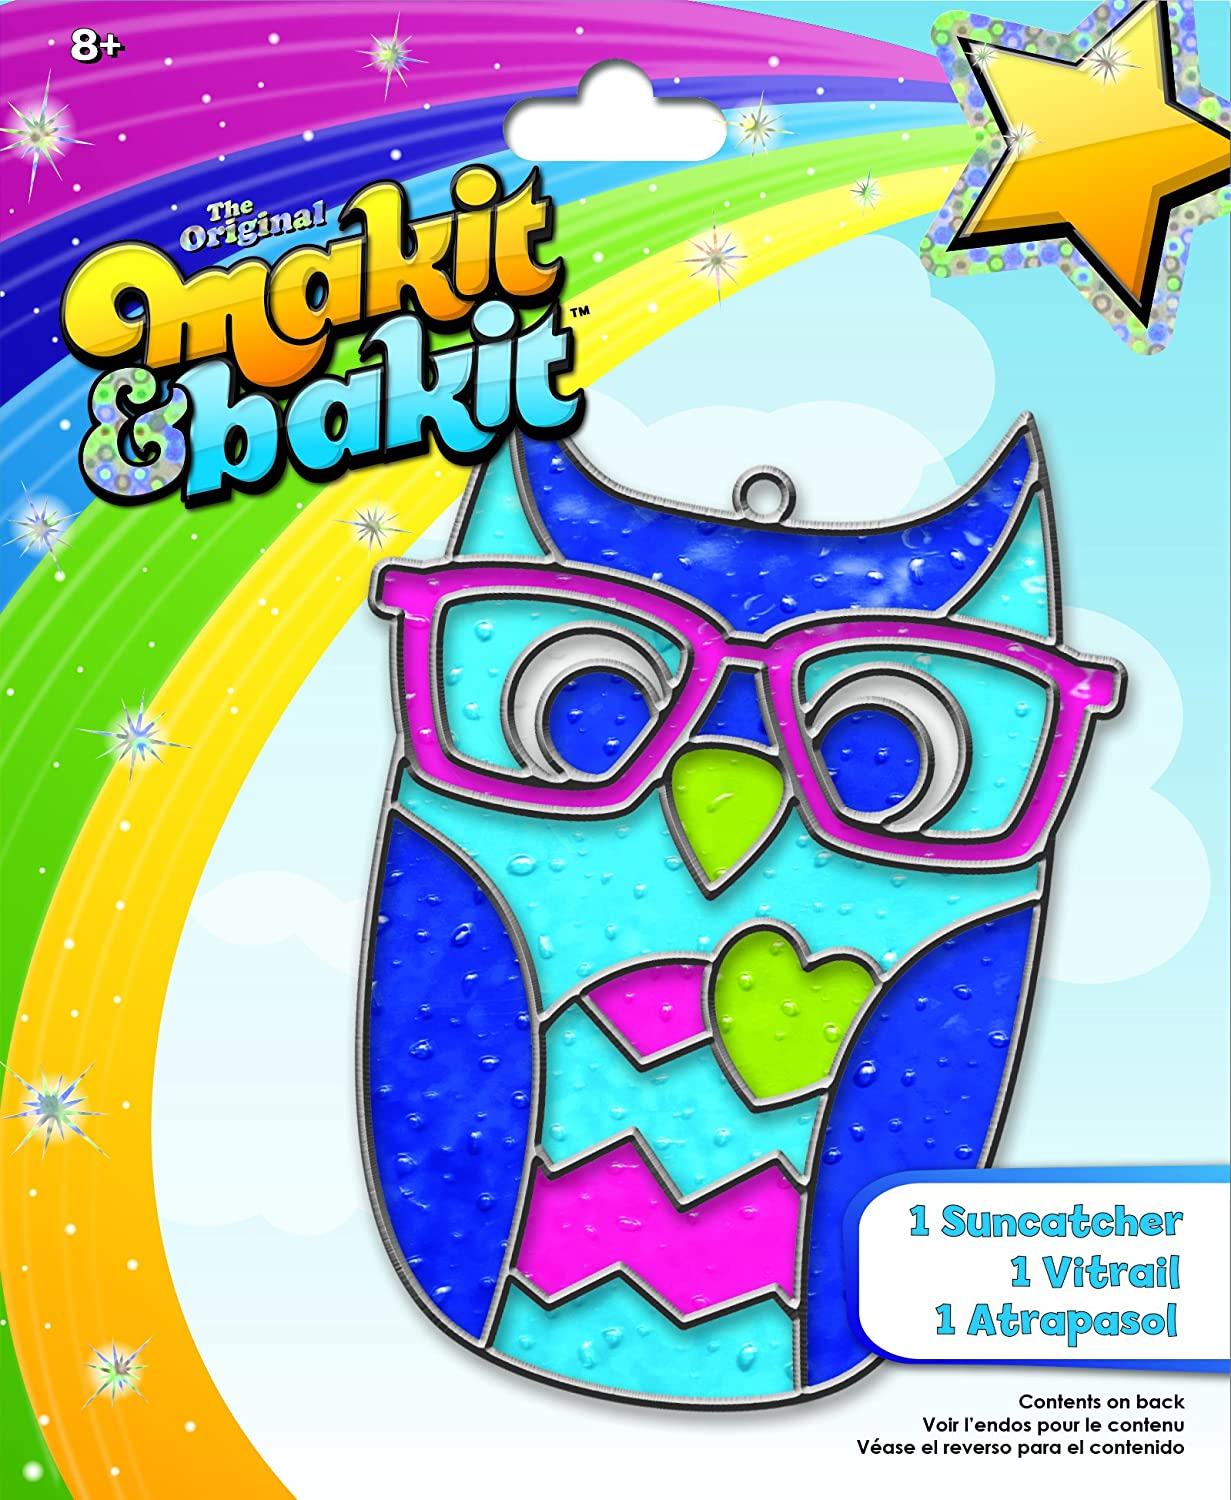 Colorbok TB-73245 Makit and Bakit Suncatcher Kit Owl